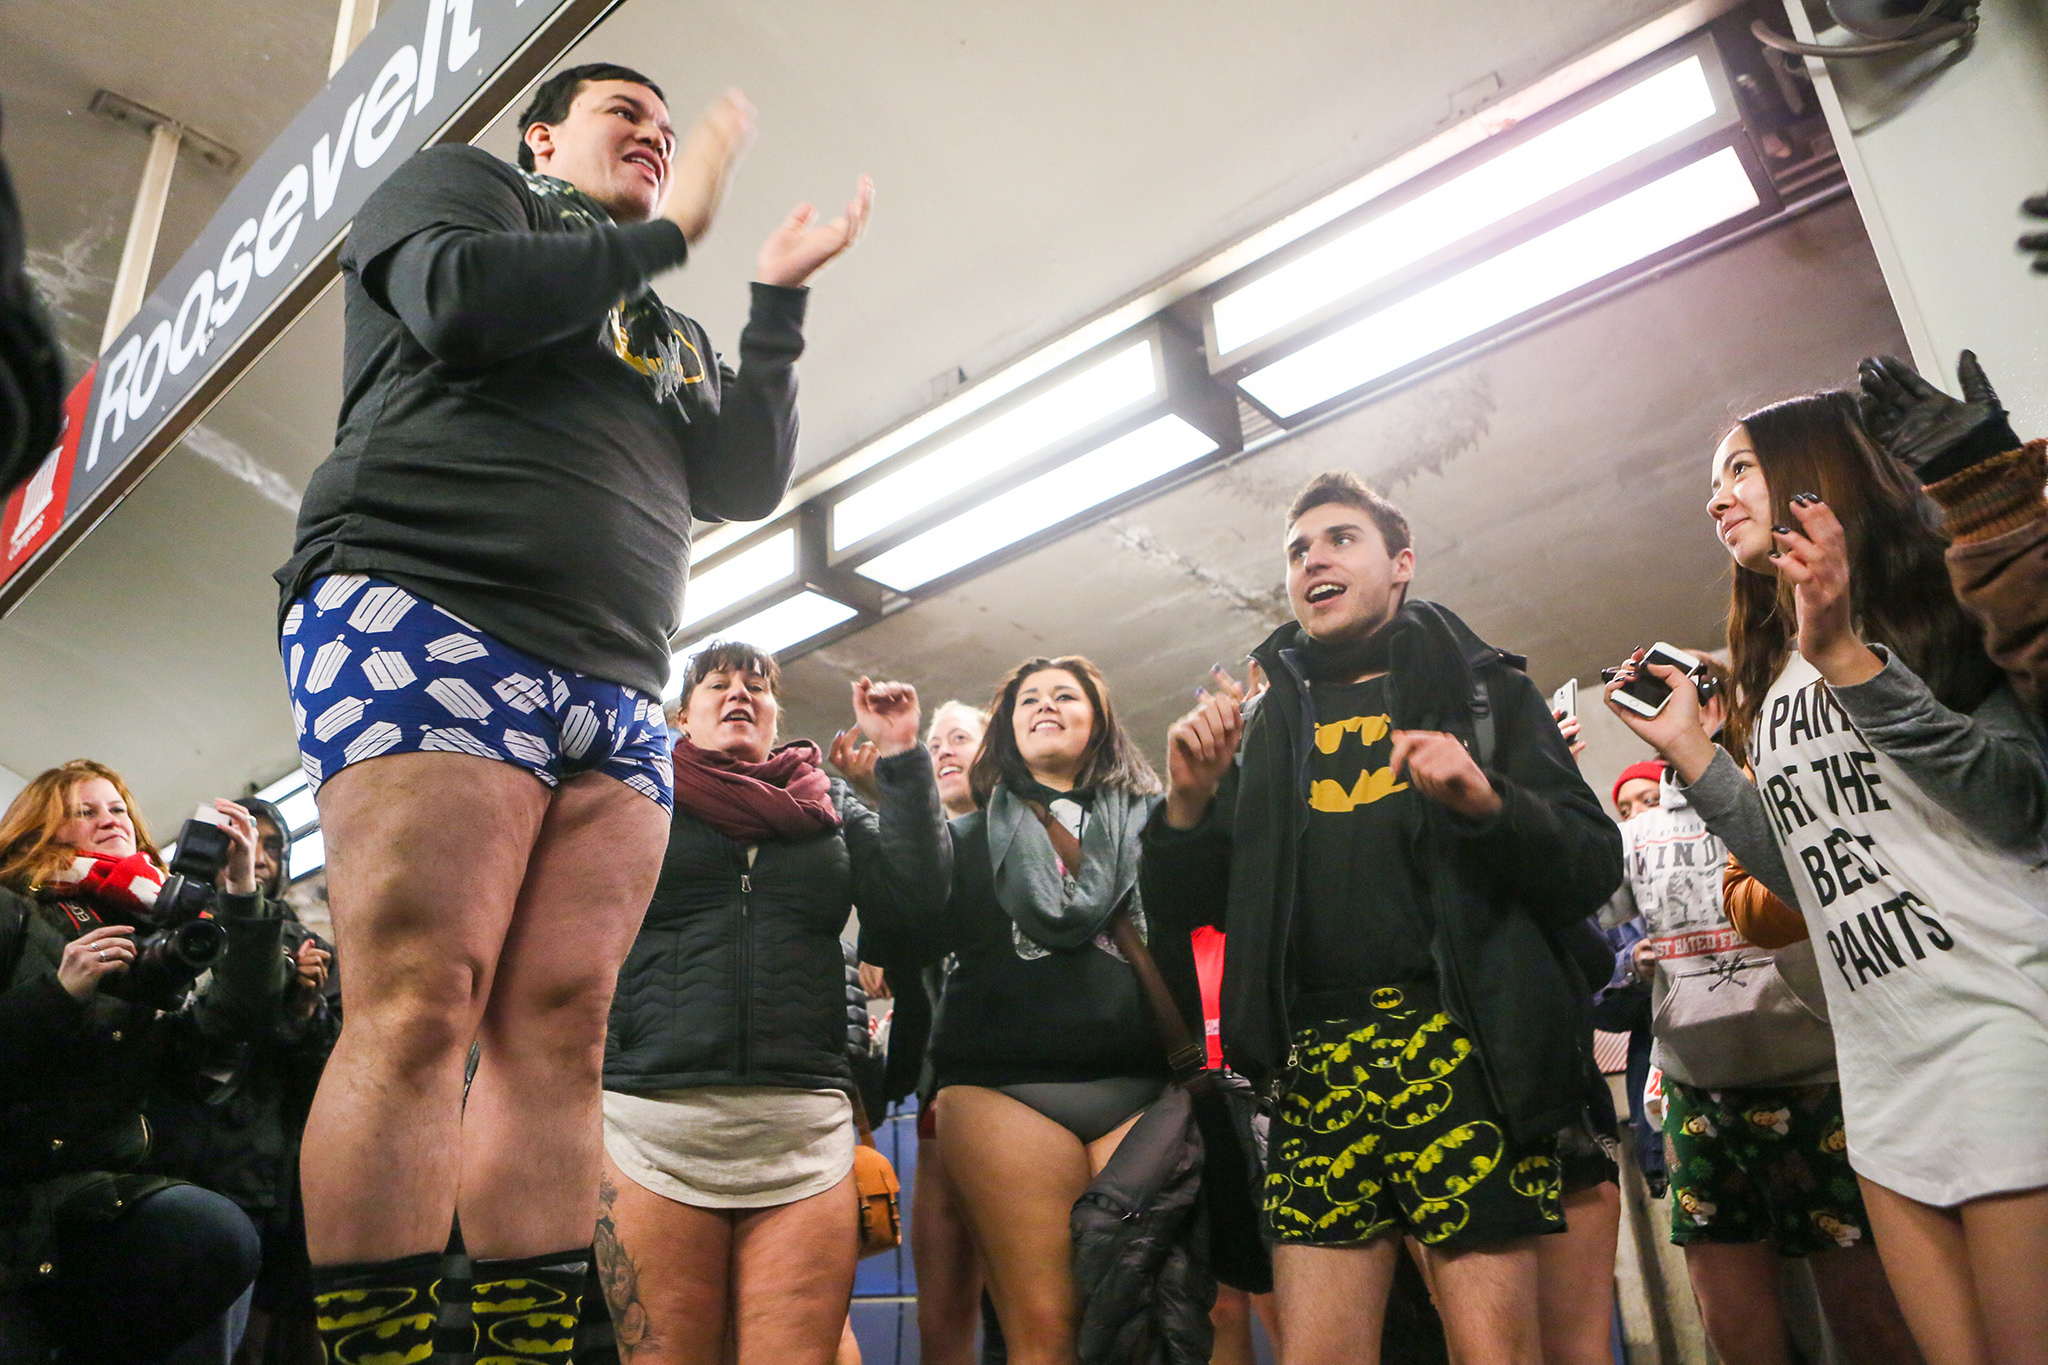 A rowdy group of stripped-down riders boarded the Red Line for the annual No Pants Subway Ride, January 11, 2015.